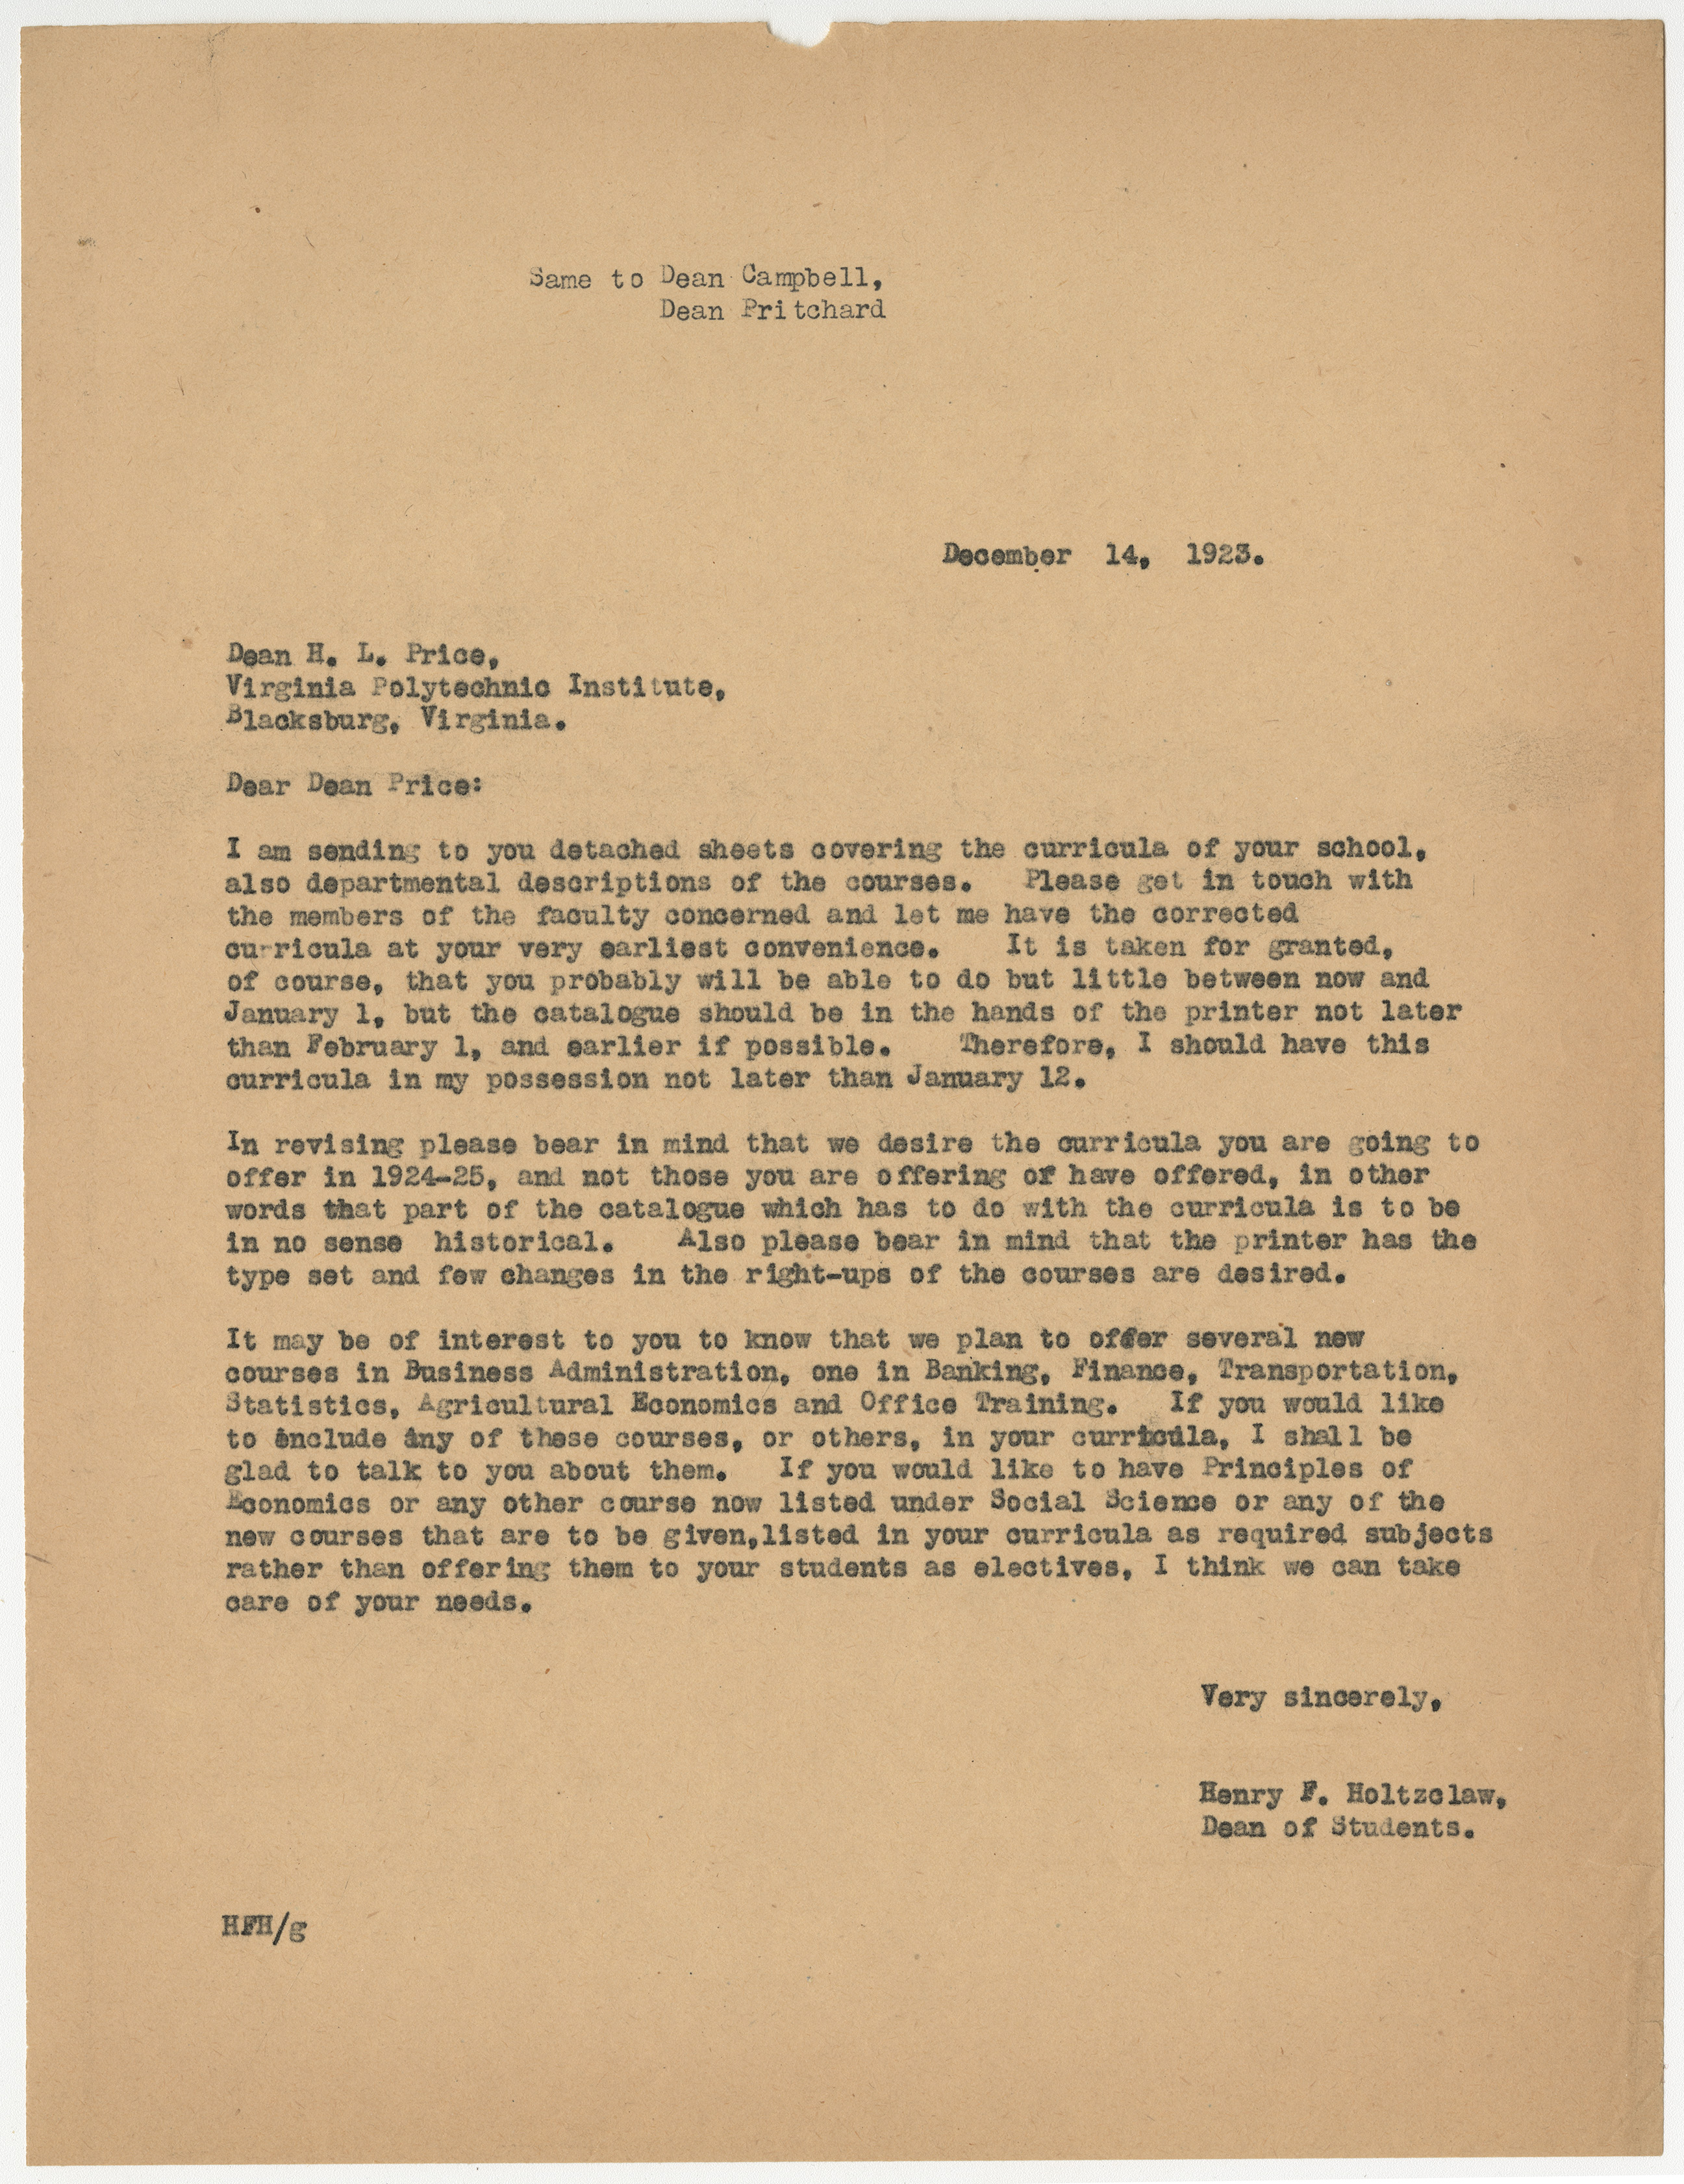 Letter from Henry F. Holtzclaw to Dean H.L. Price, regarding the annual catalog curricula, December 14, 1923, from the Records of the Dean of Students, Henry F. Holtzclaw, RG 8/2a